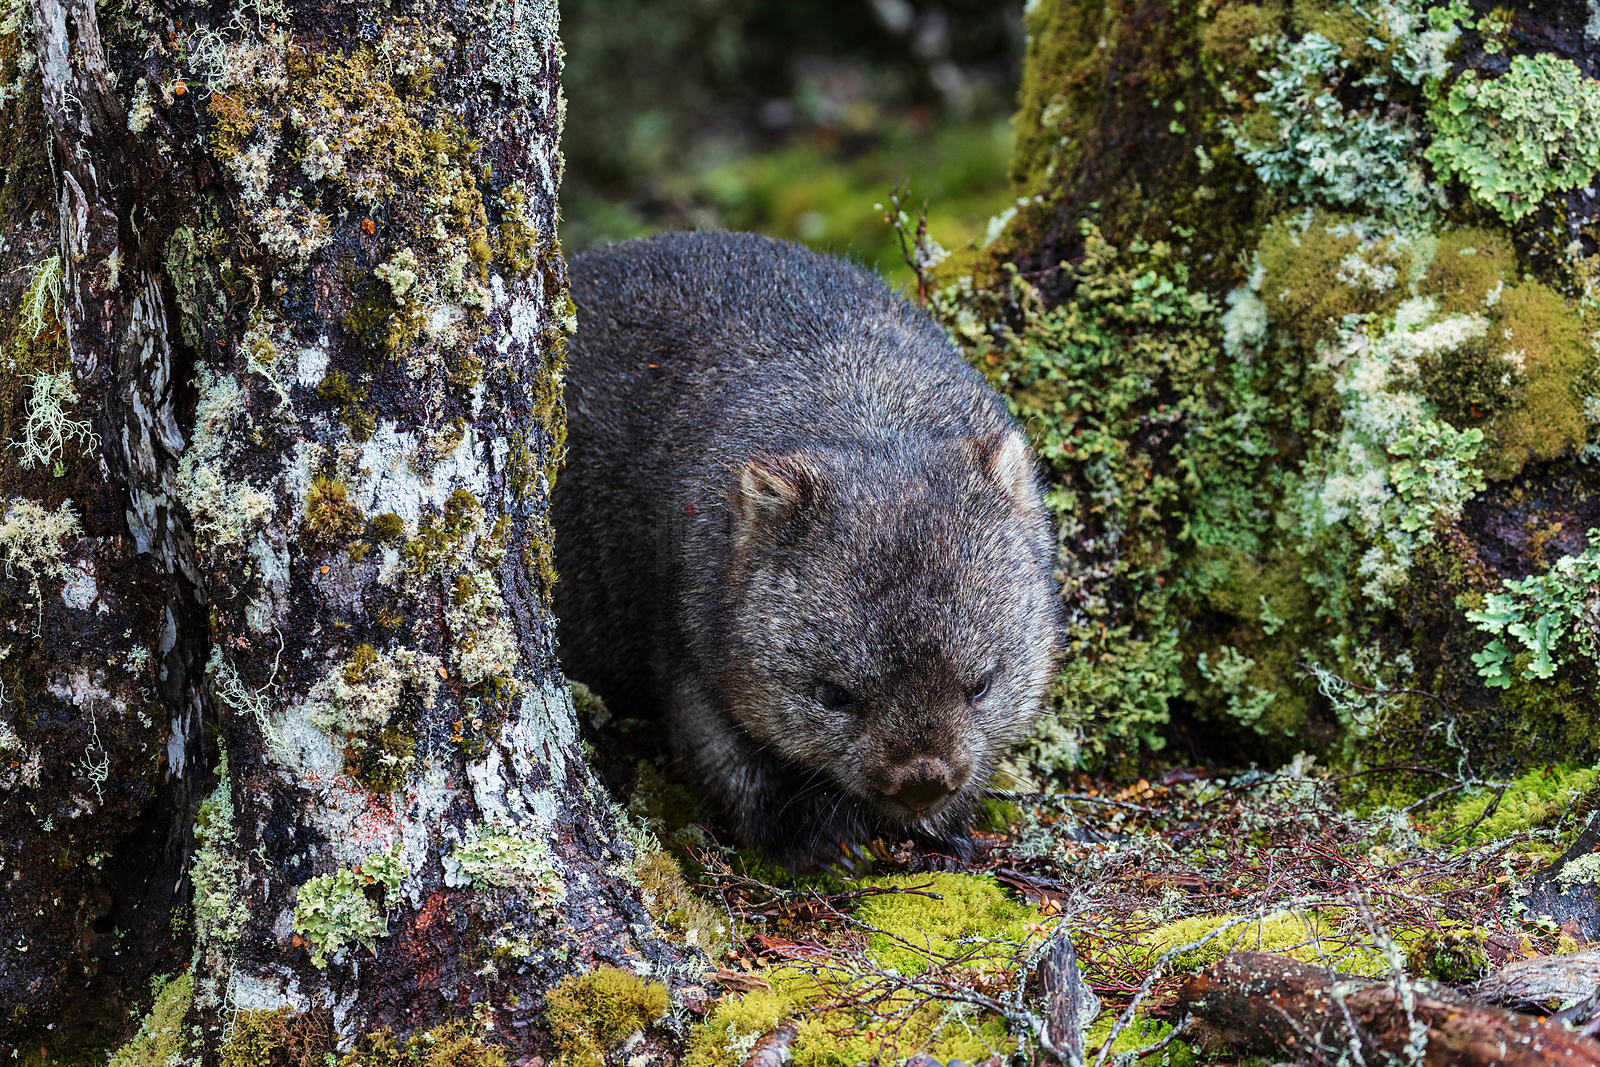 Portrait of a Wombat in Temperate Rainforest